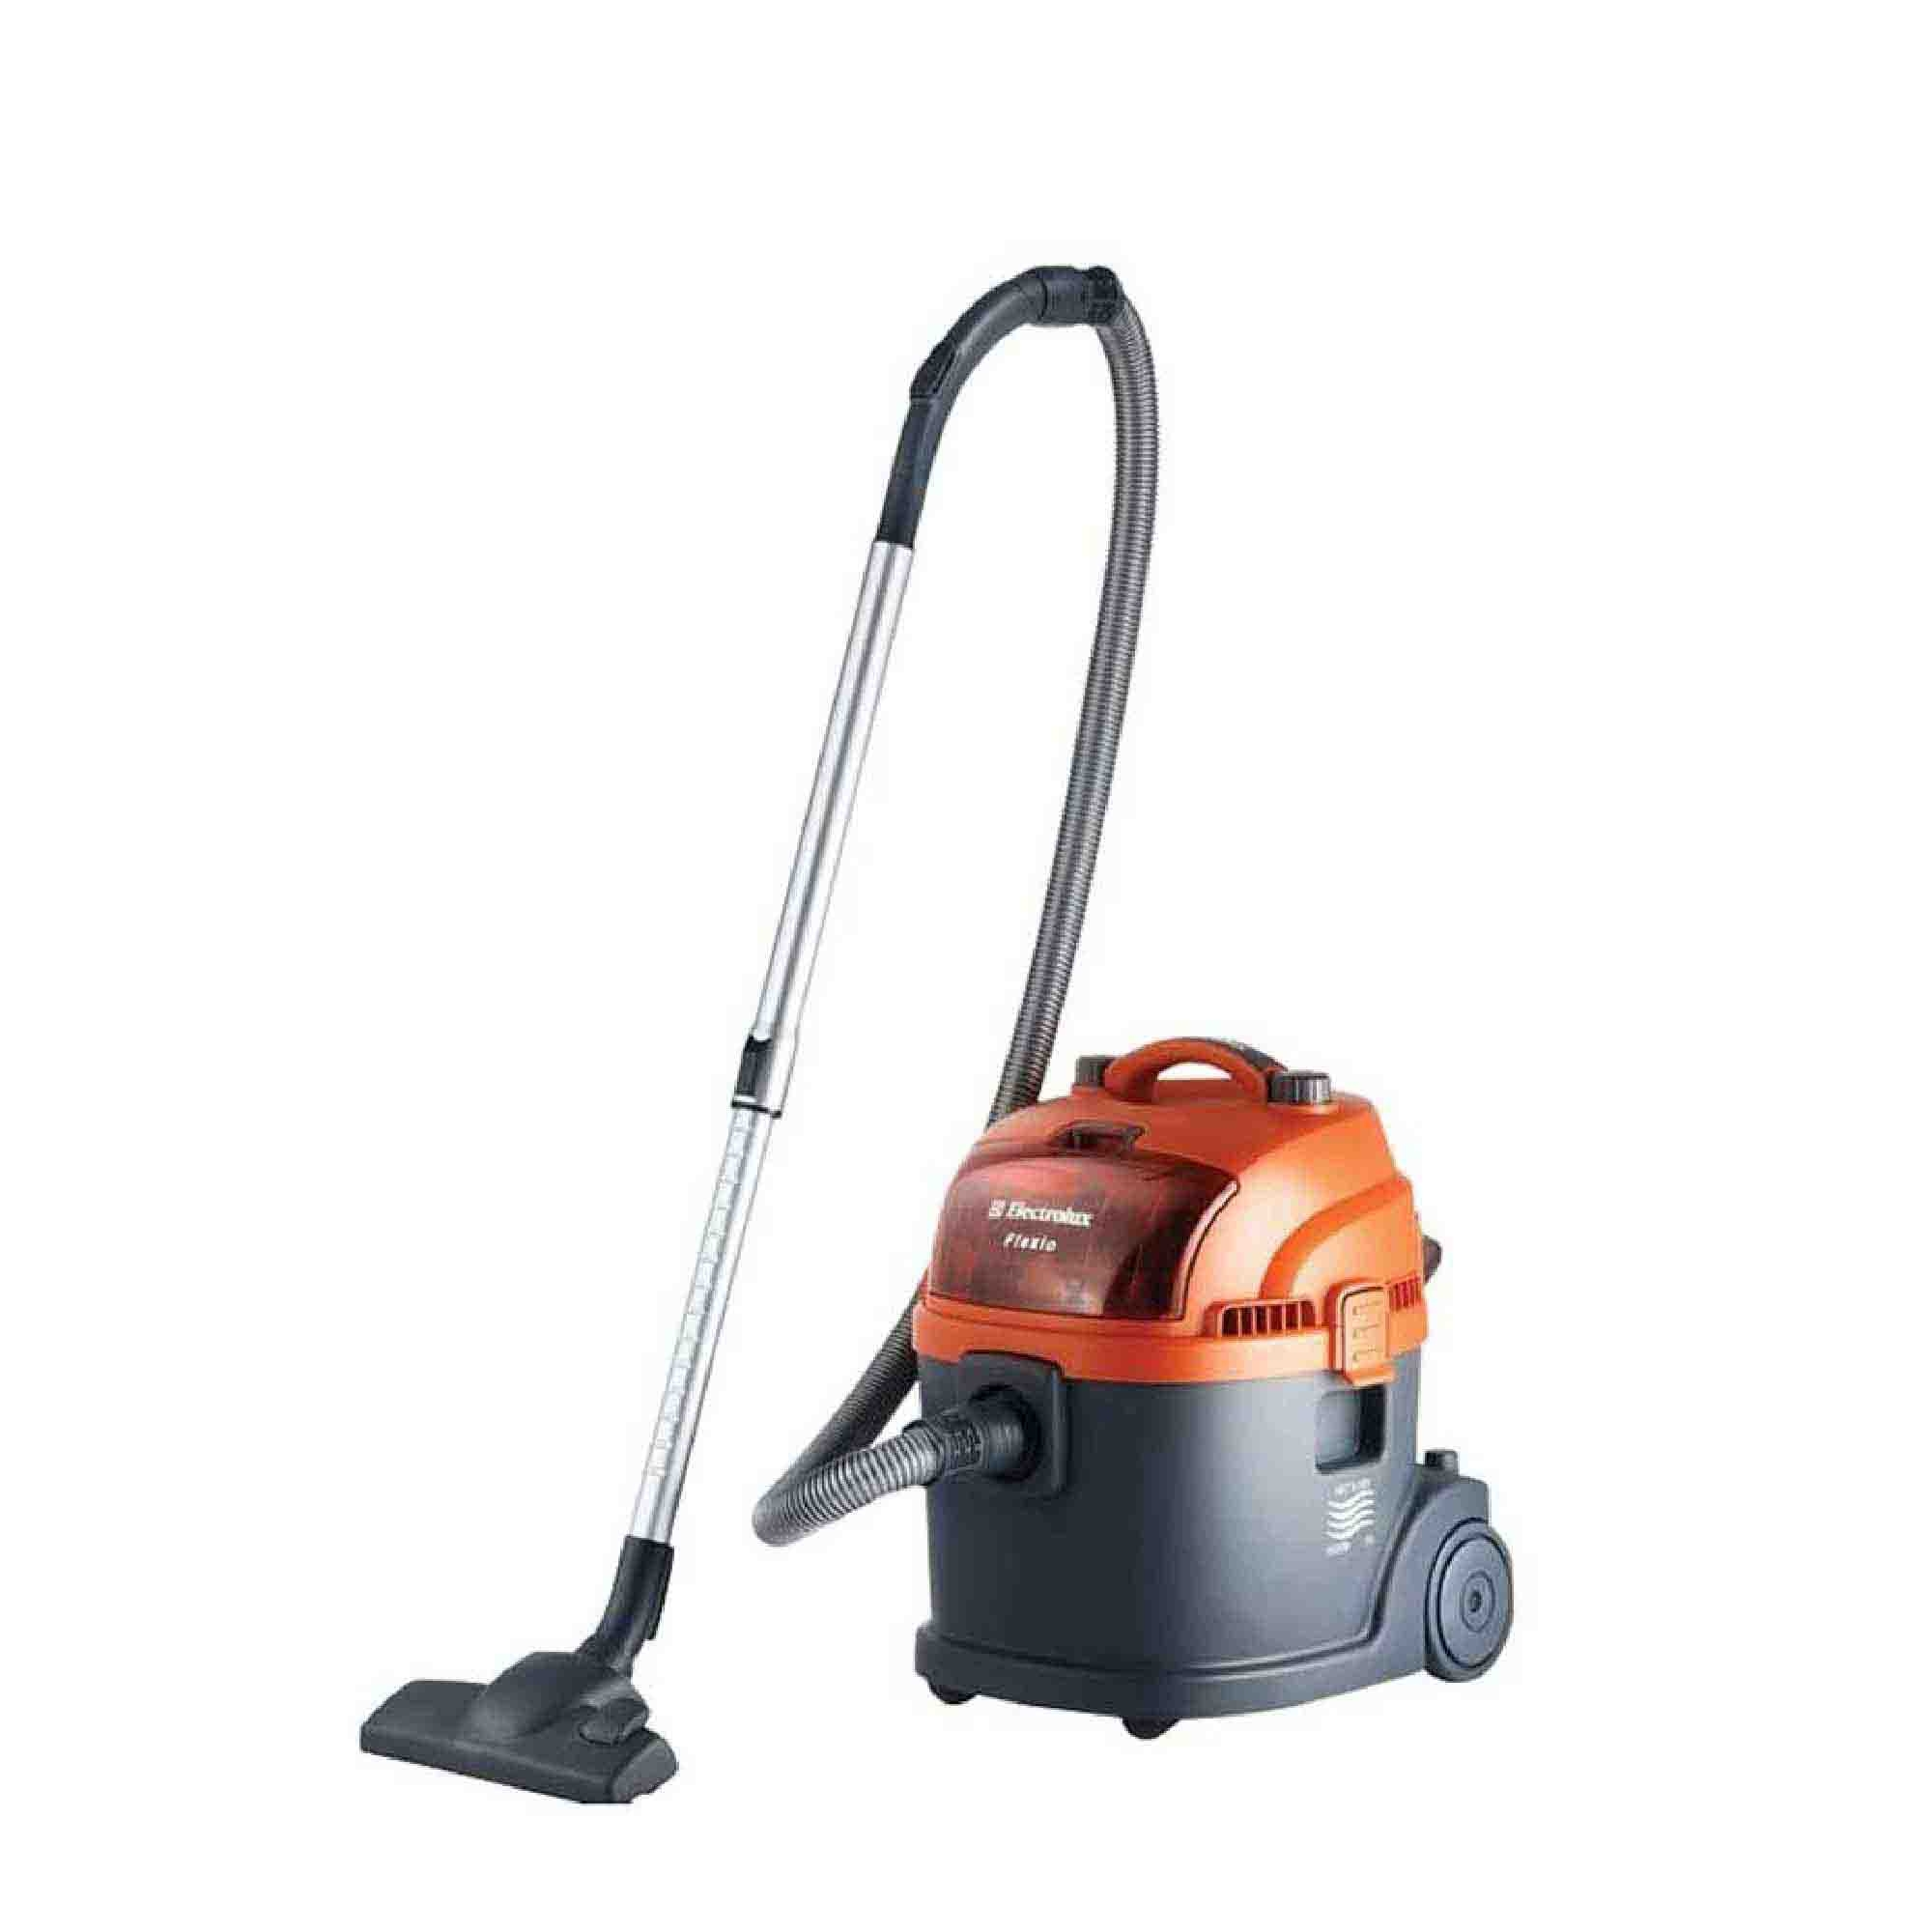 Electrolux Vacuum Cleaner Z931 1600W Wet Dry Use